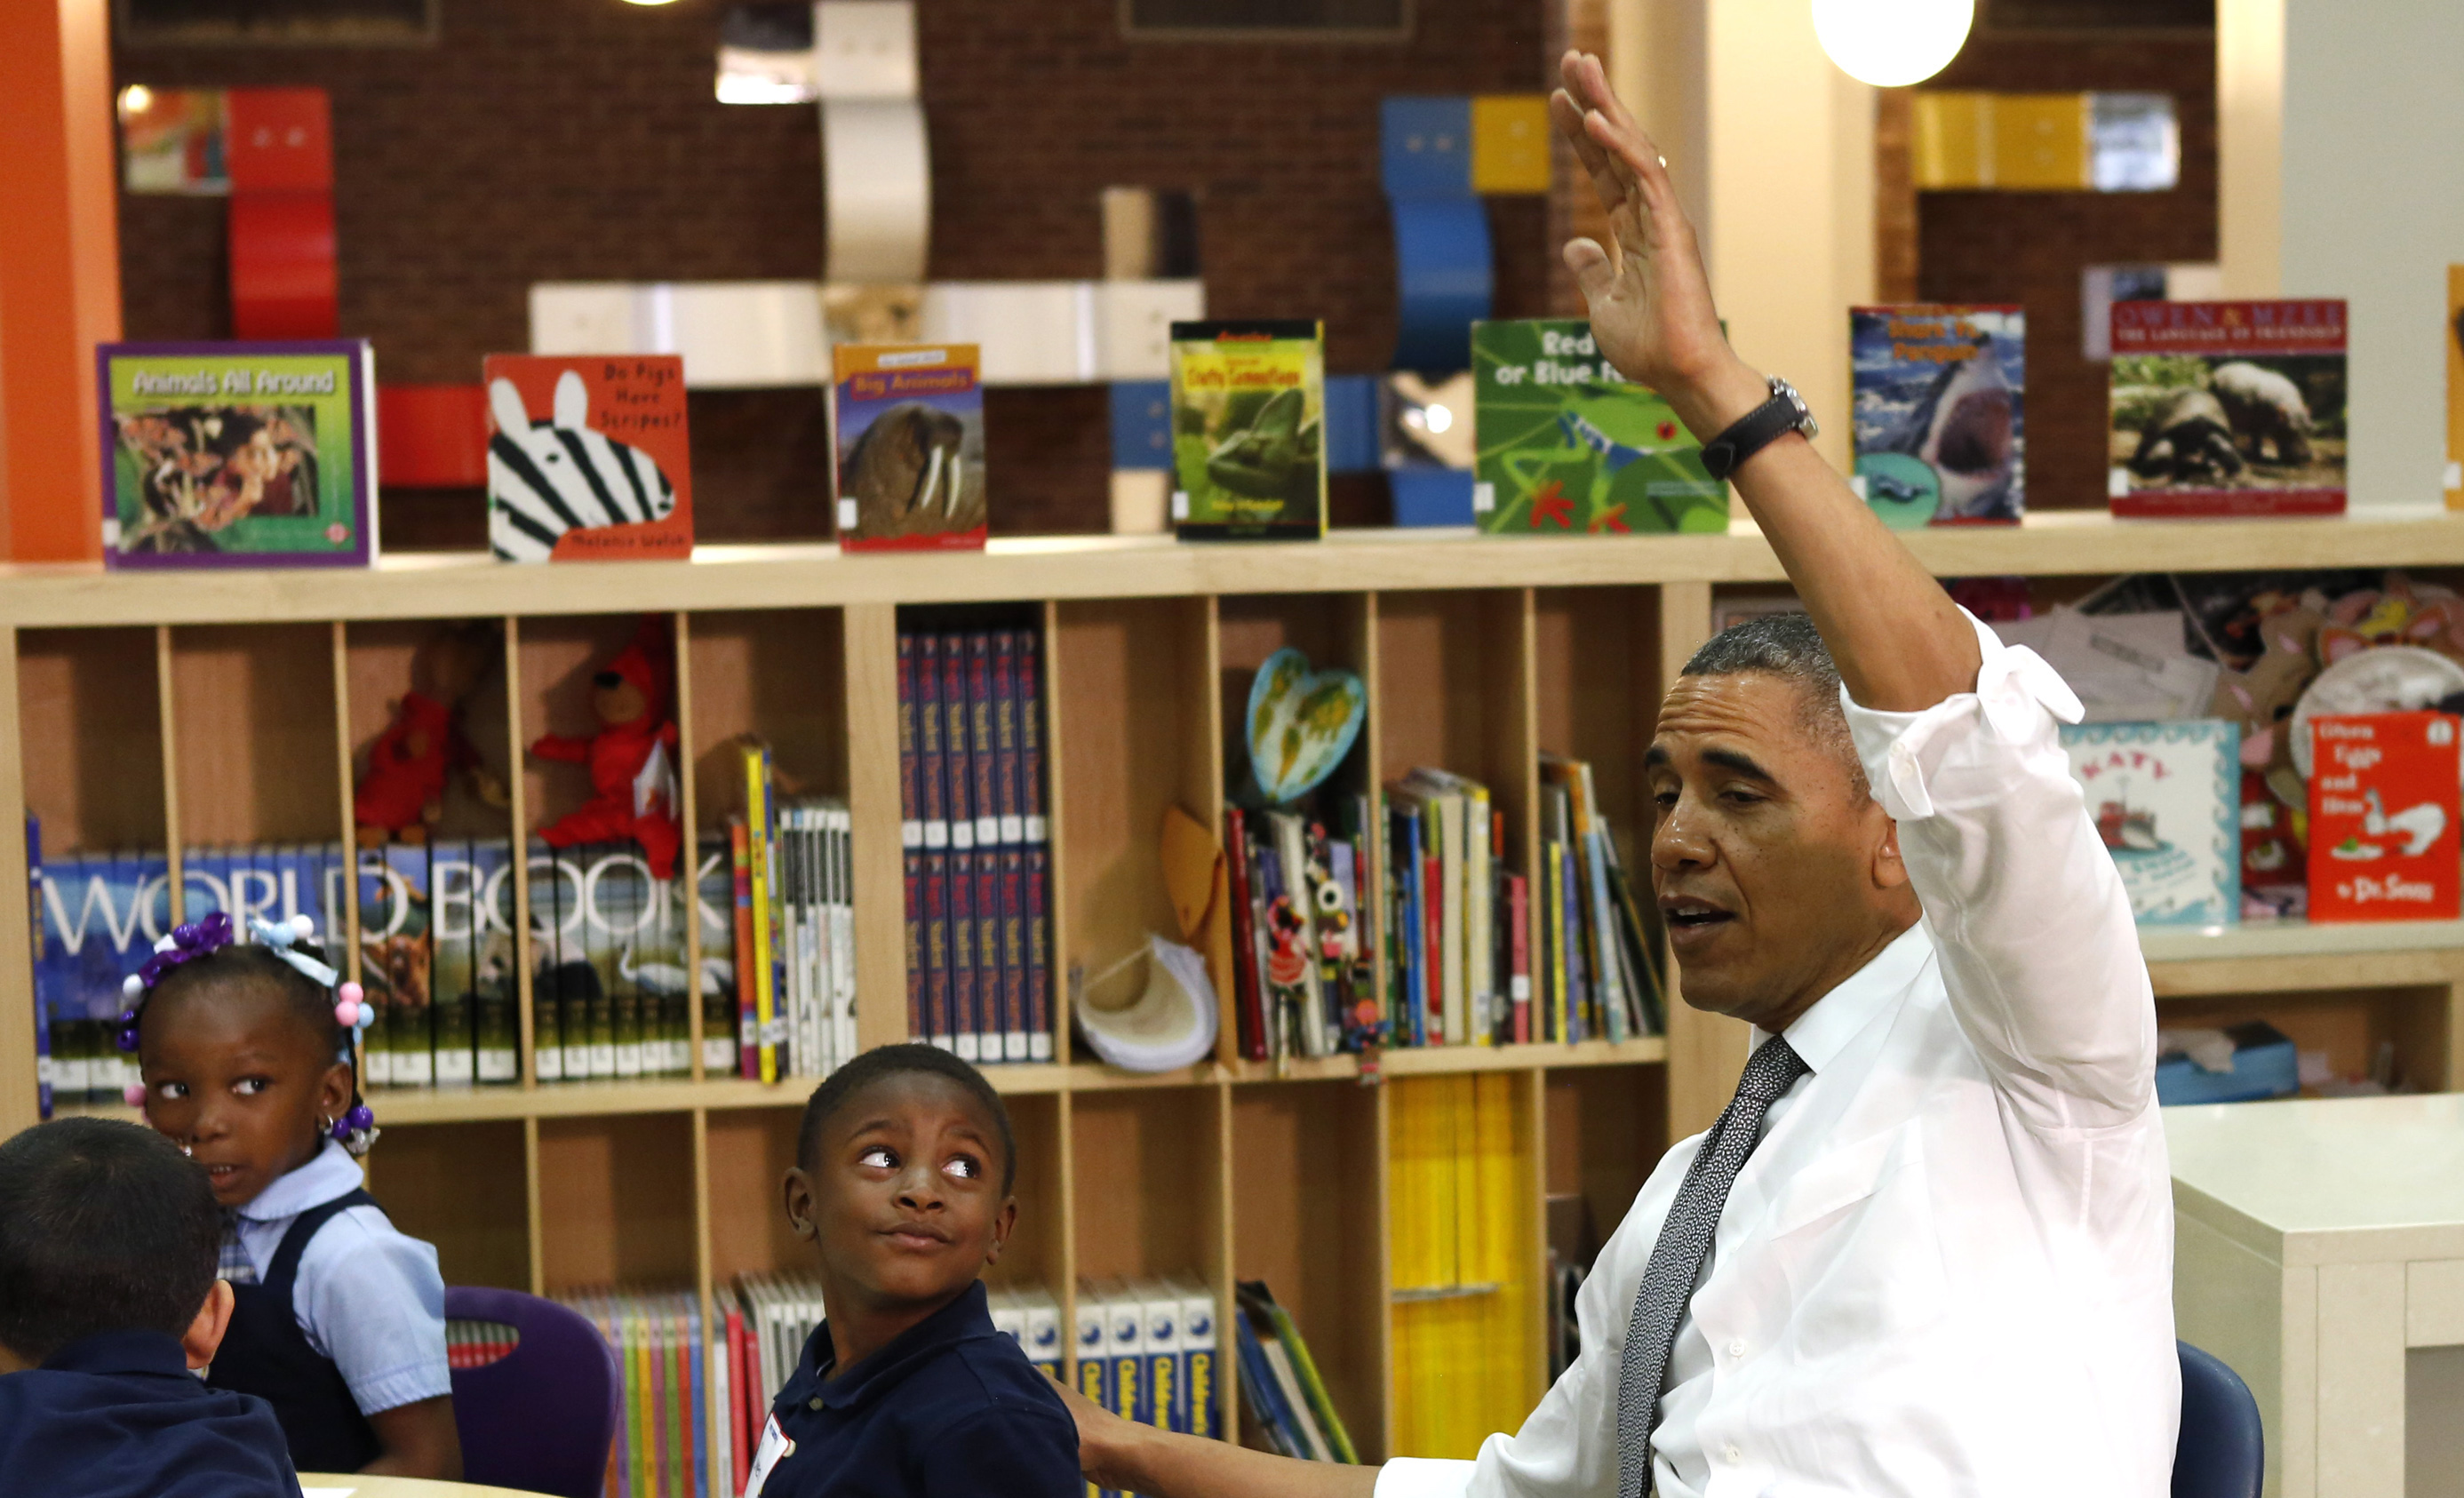 Obama raising his hand in a classroom with students.